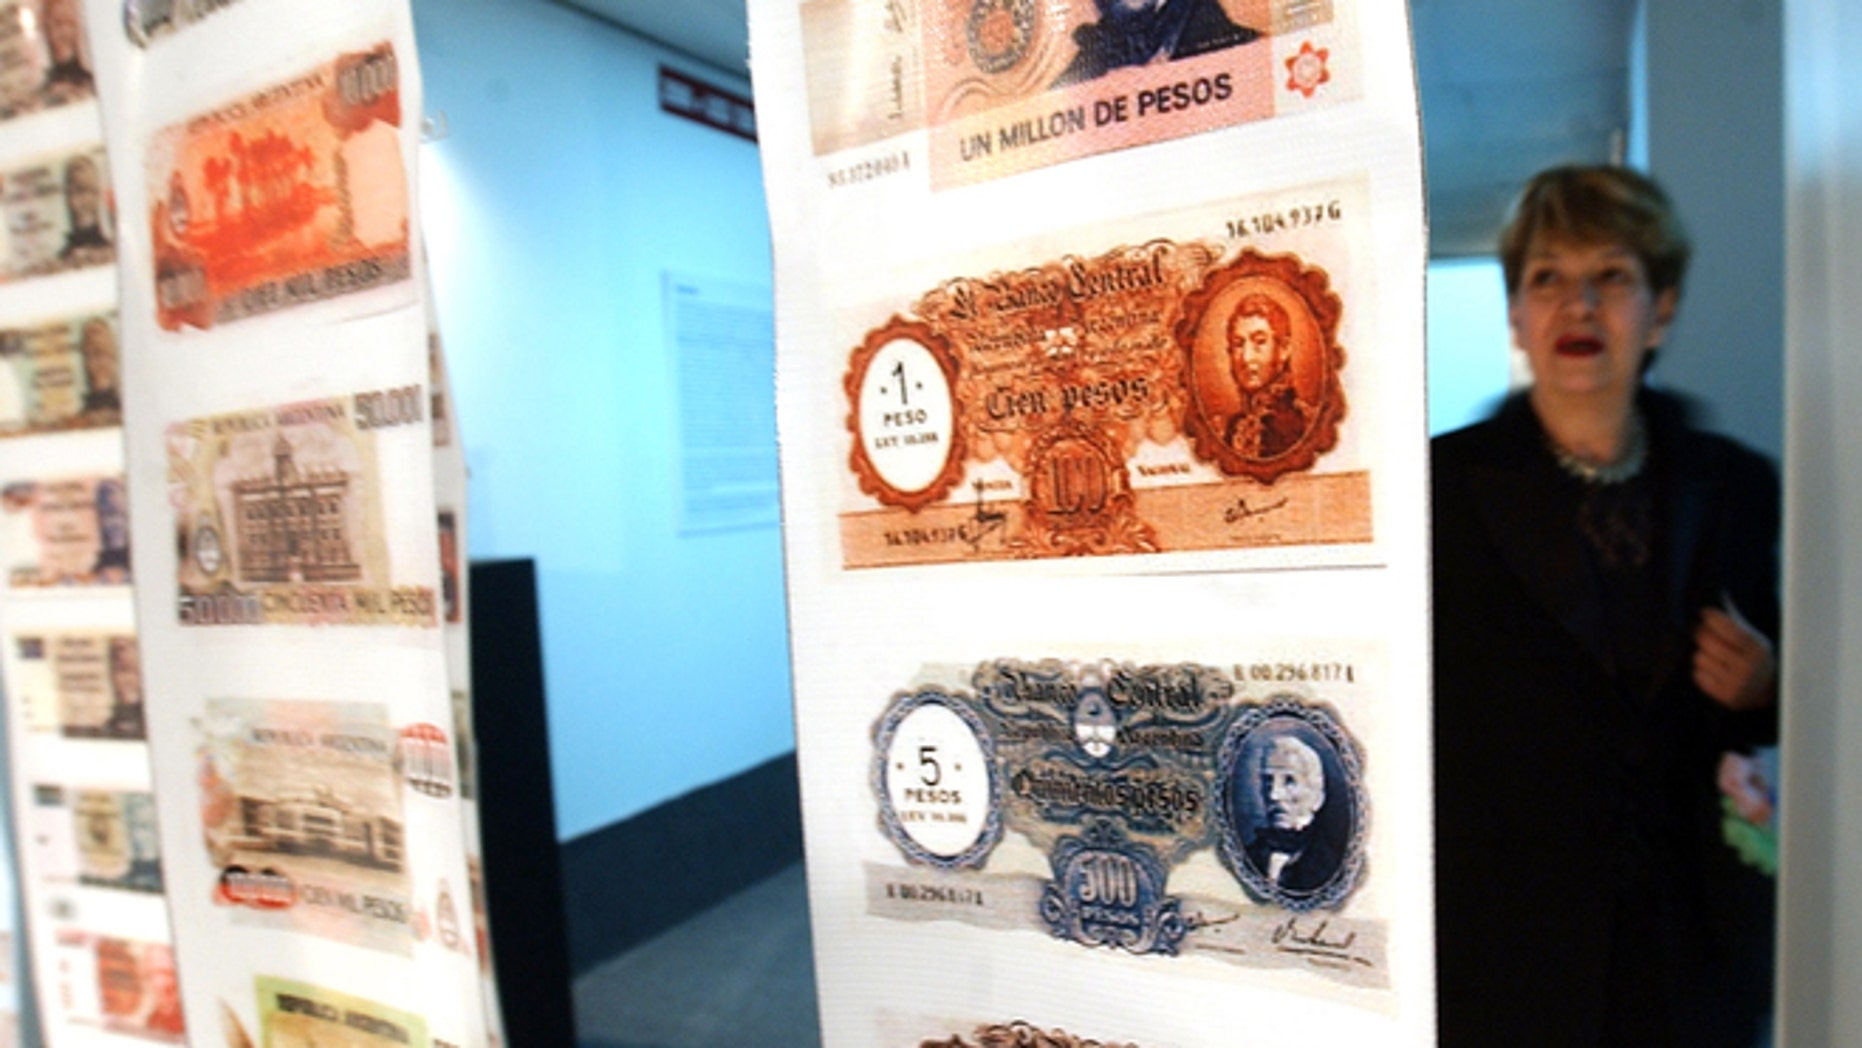 FILE - In this April, 28, 2005, file photo, a woman looks at old currency during the opening of the Foreign Debt Museum in Buenos Aires, Argentina.  The museum, which is the world's first dedicated to a country's debt, opened nearly four years after Argentina staged the largest debt default in modern history. Argentine President Cristina Fernandez said Monday June 16, 2014 that Argentina can't comply with U.S. court orders to pay $1.5 billion to winners of a decade-long legal battle over defaulted debt, the position her country was left in Monday when the U.S. Supreme Court refused to hear her government's final appeal. (AP Photo/Natacha Pisarenko,File)